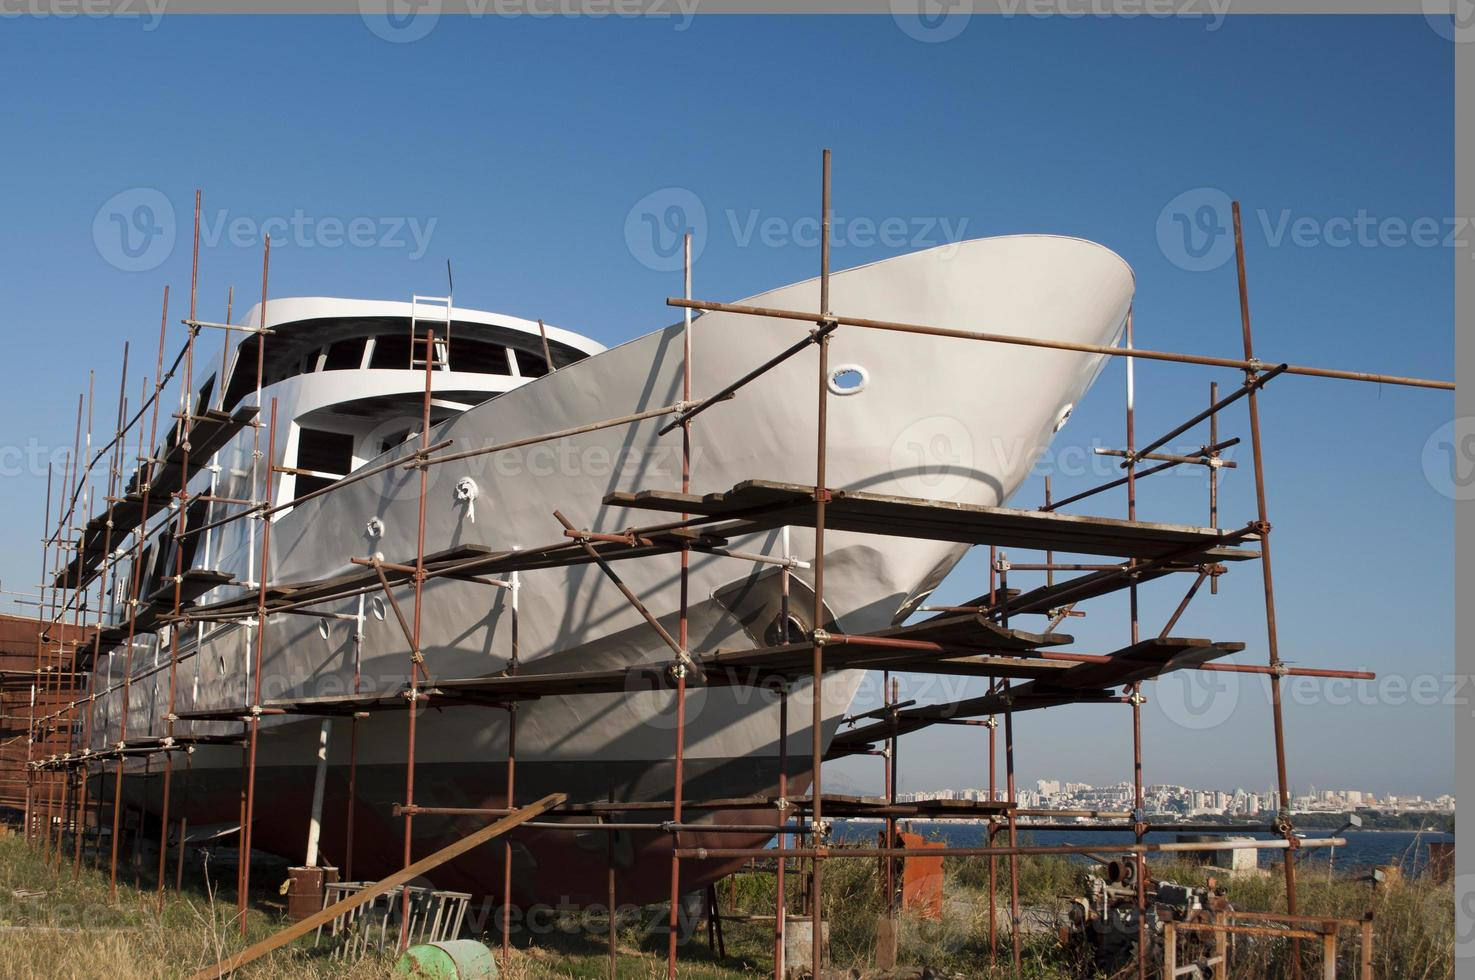 nave nel cantiere foto